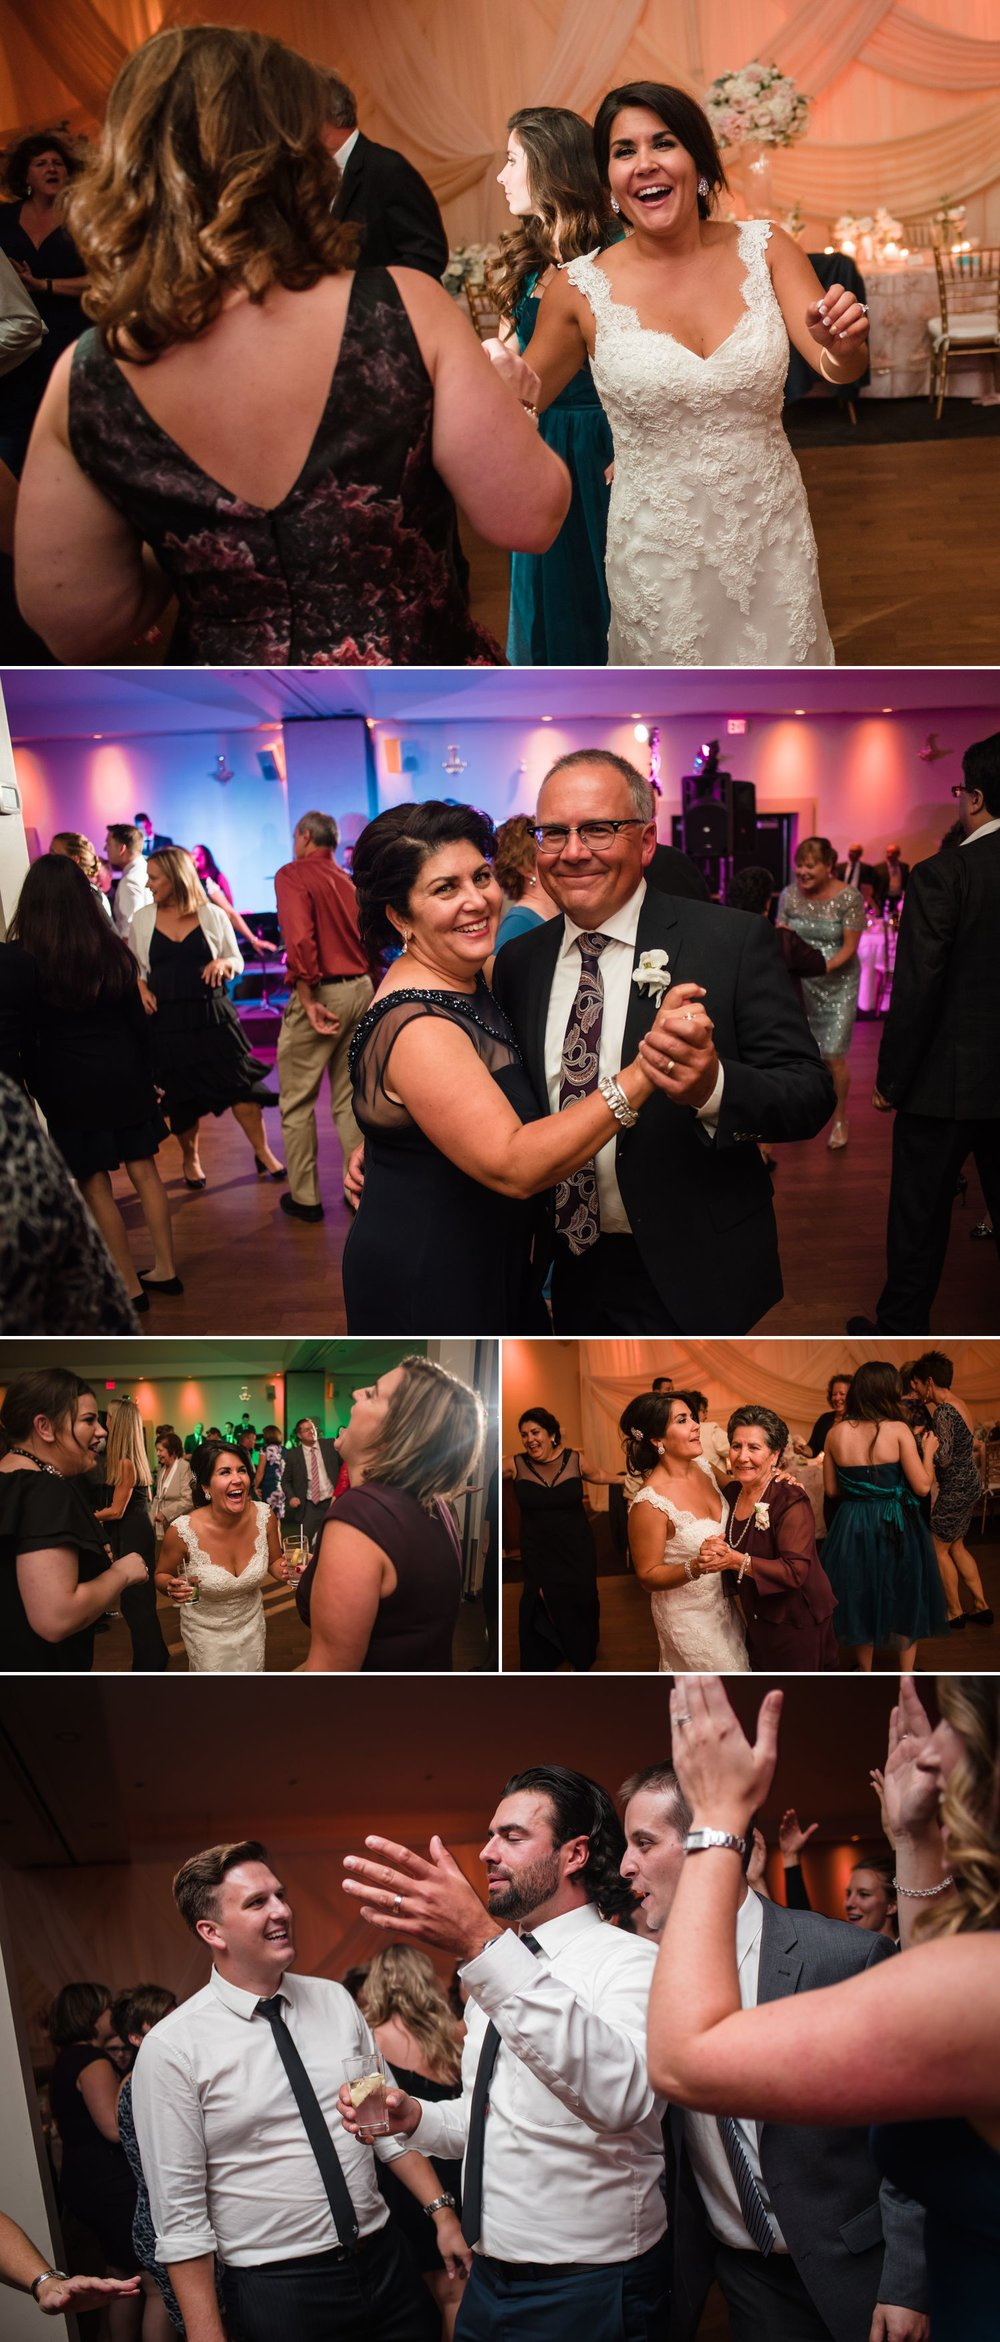 The bride and groom dancing with their guests during their wedding reception at the Centurion Conference Centre, Ottawa.